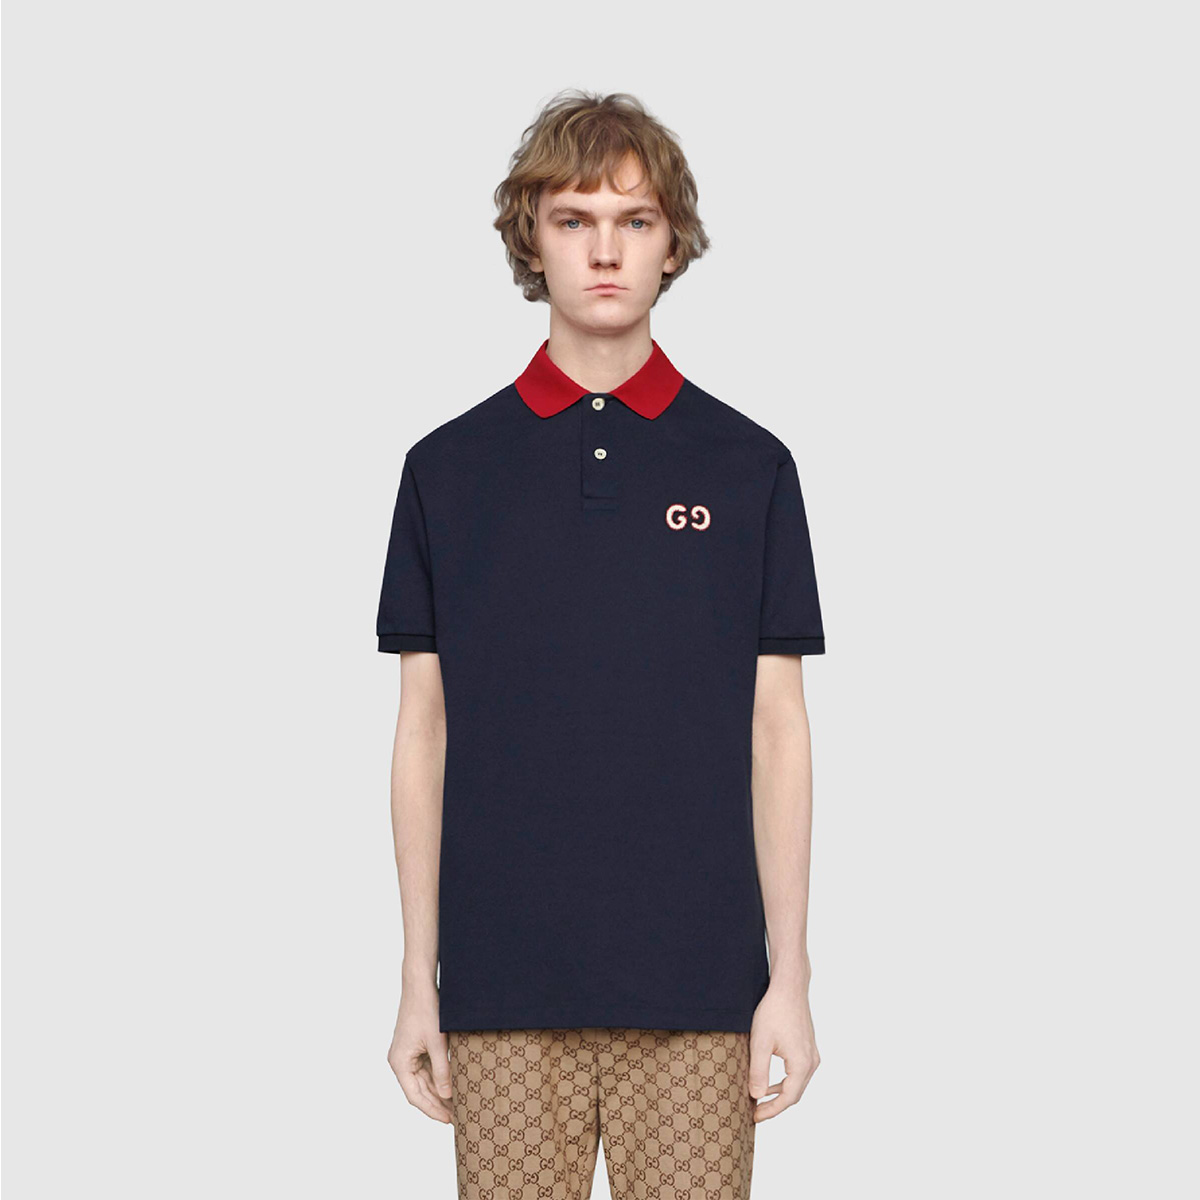 ao-polo-gucci-regular-fit-with-gg-embroidery-navy